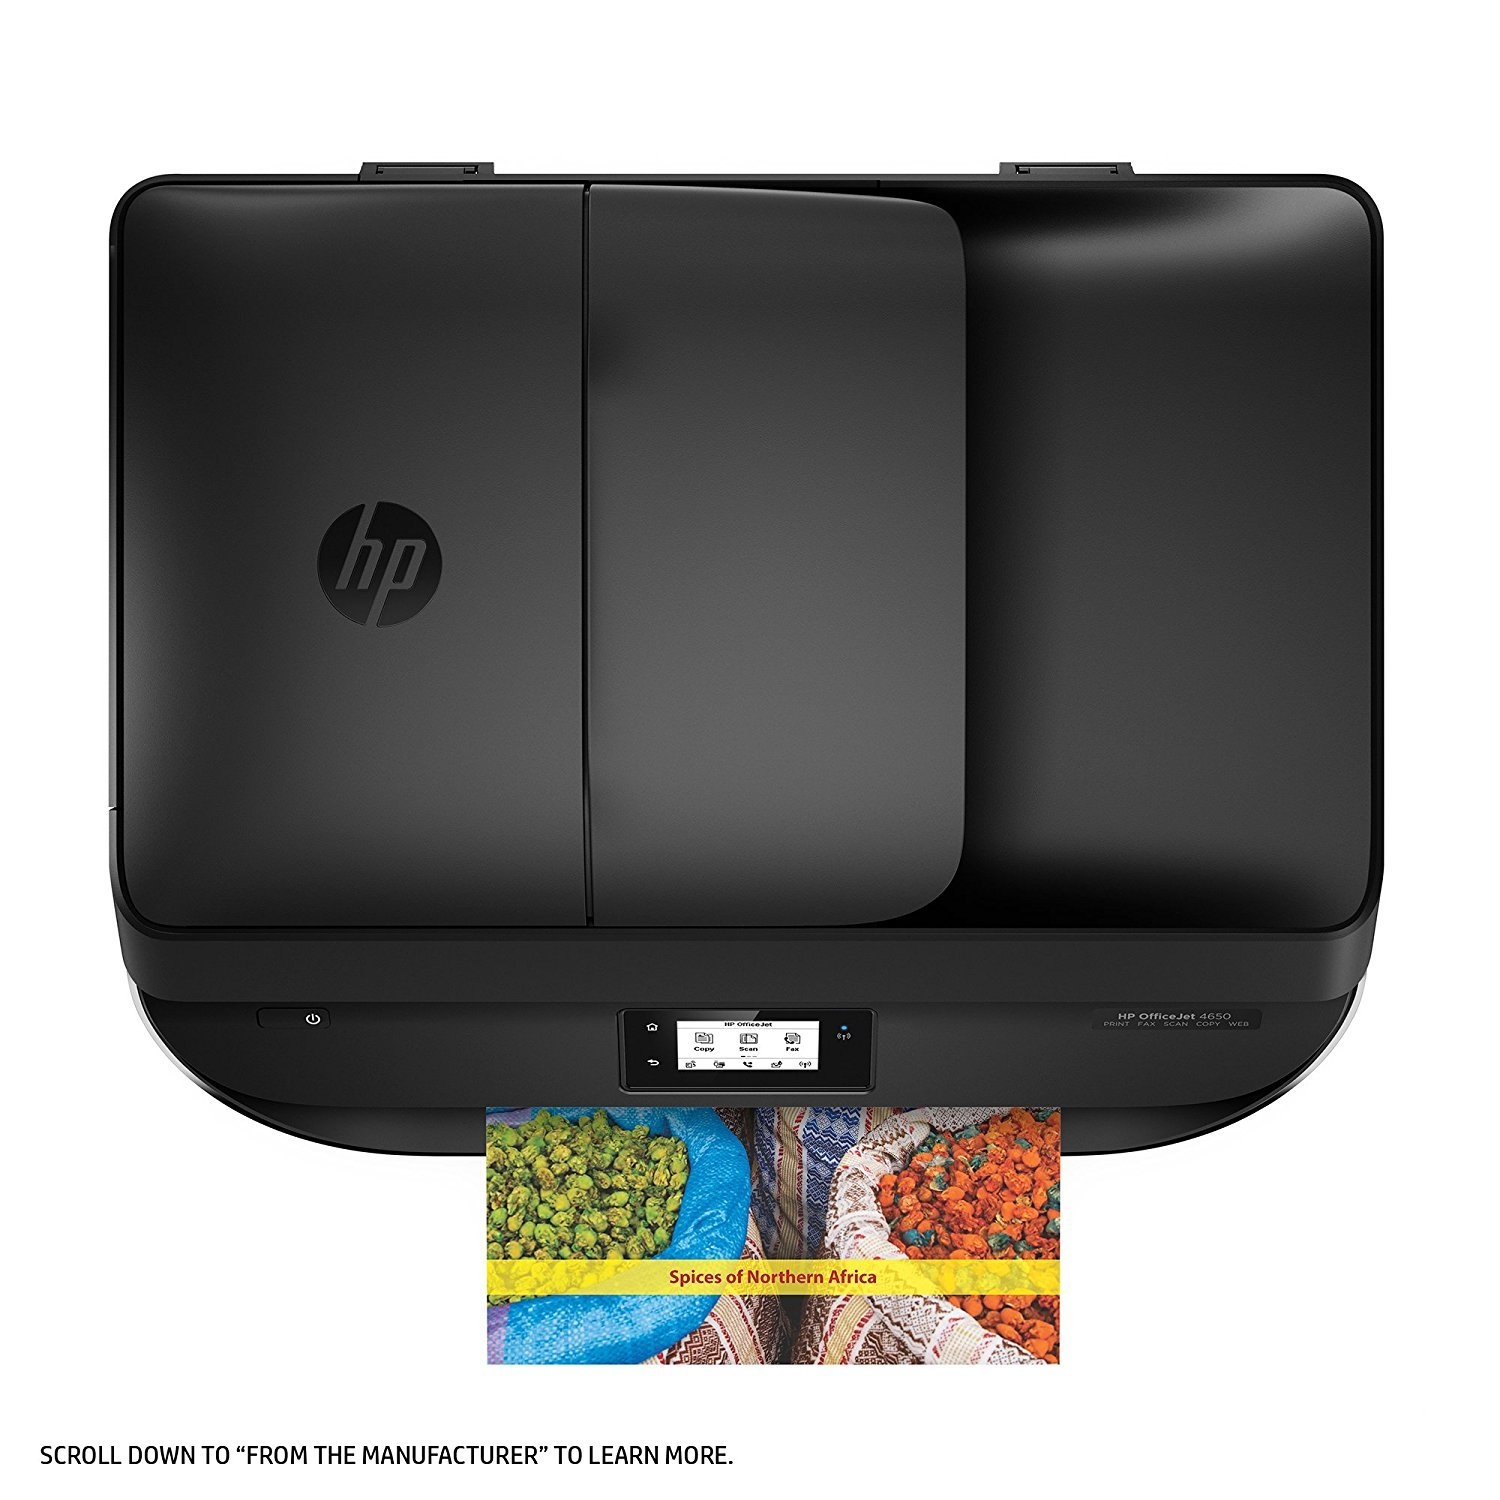 HP OfficeJet 4650 Wireless All-in-One Photo Printer, Copier and Scanner - Black (Certified Refurbished) by HP (Image #5)